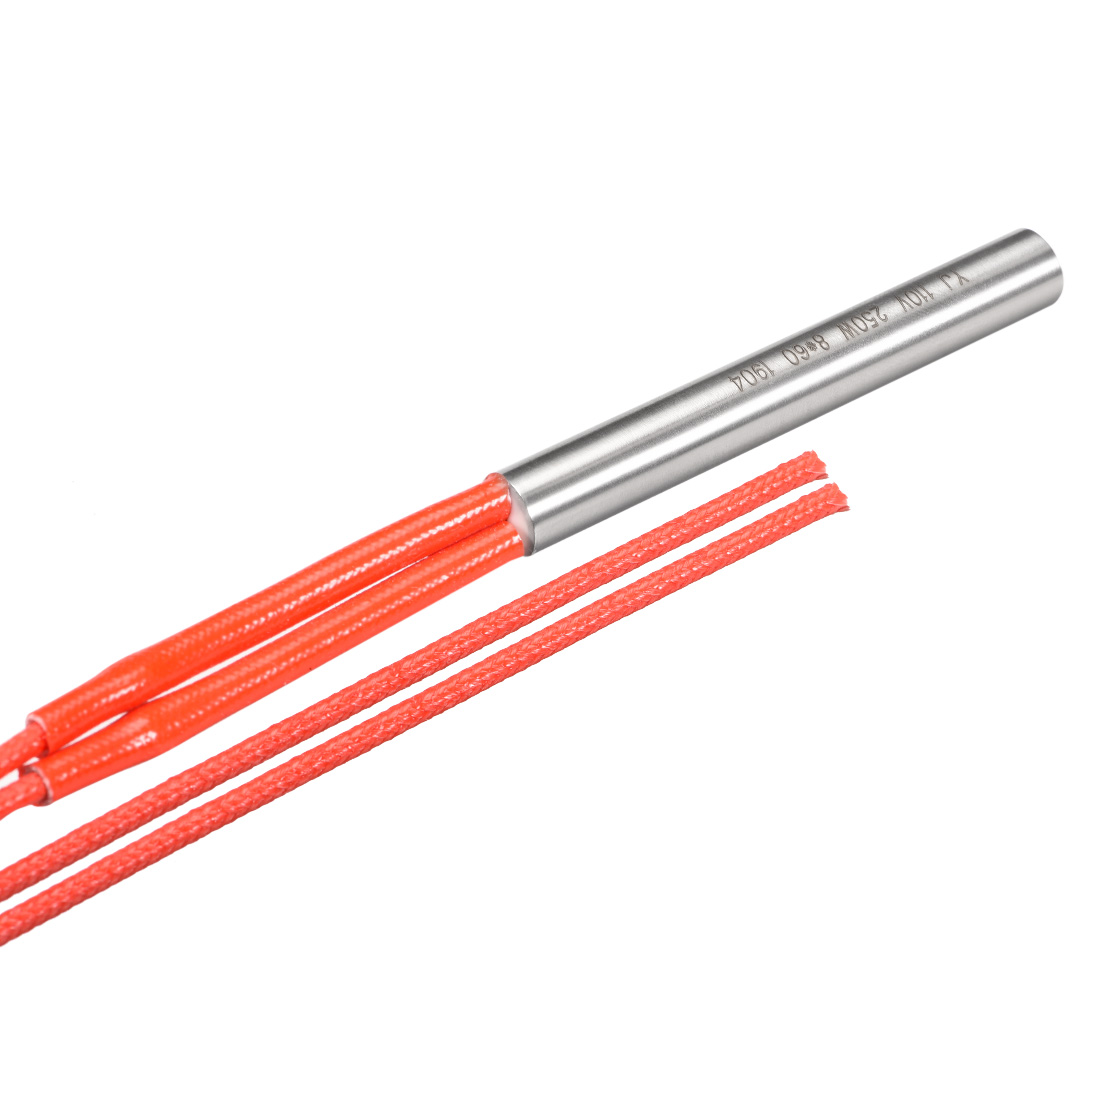 Cartridge Heater AC 110V 250w Stainless Steel Heating Element 8mmx60mm